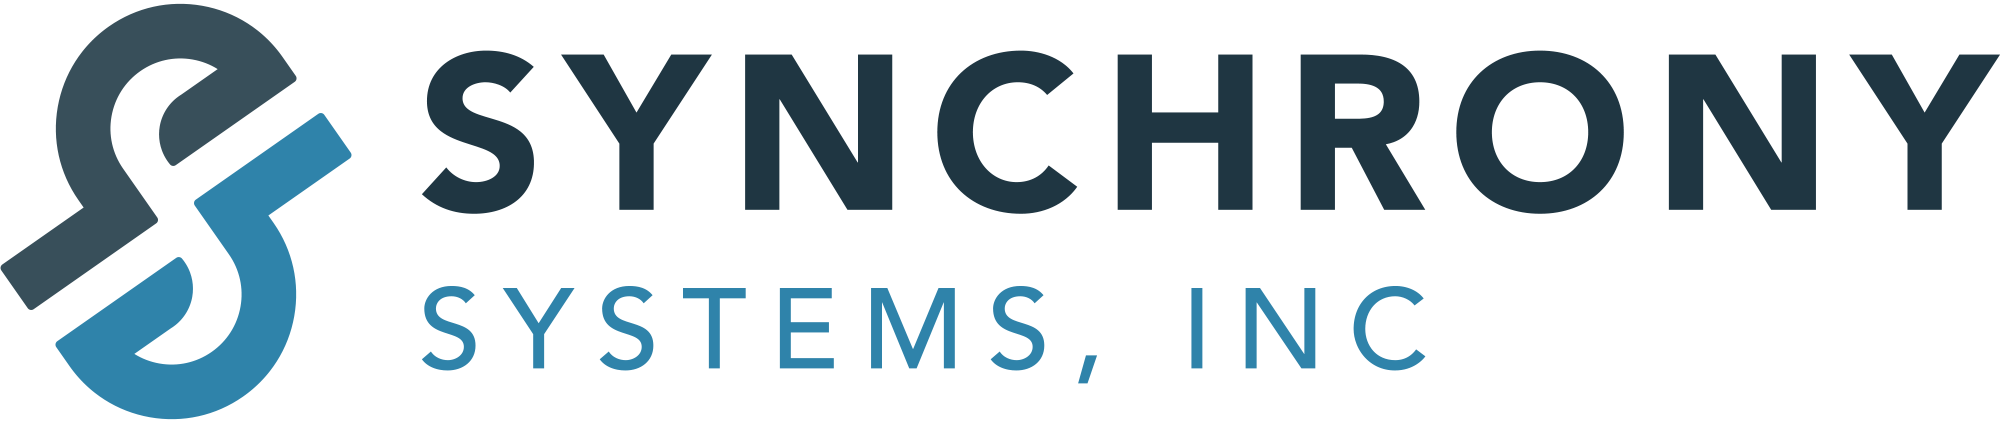 Synchrony Systems Announces Microservices Extraction Capabilities for Rapid Migration of In-House Legacy Application Functionality